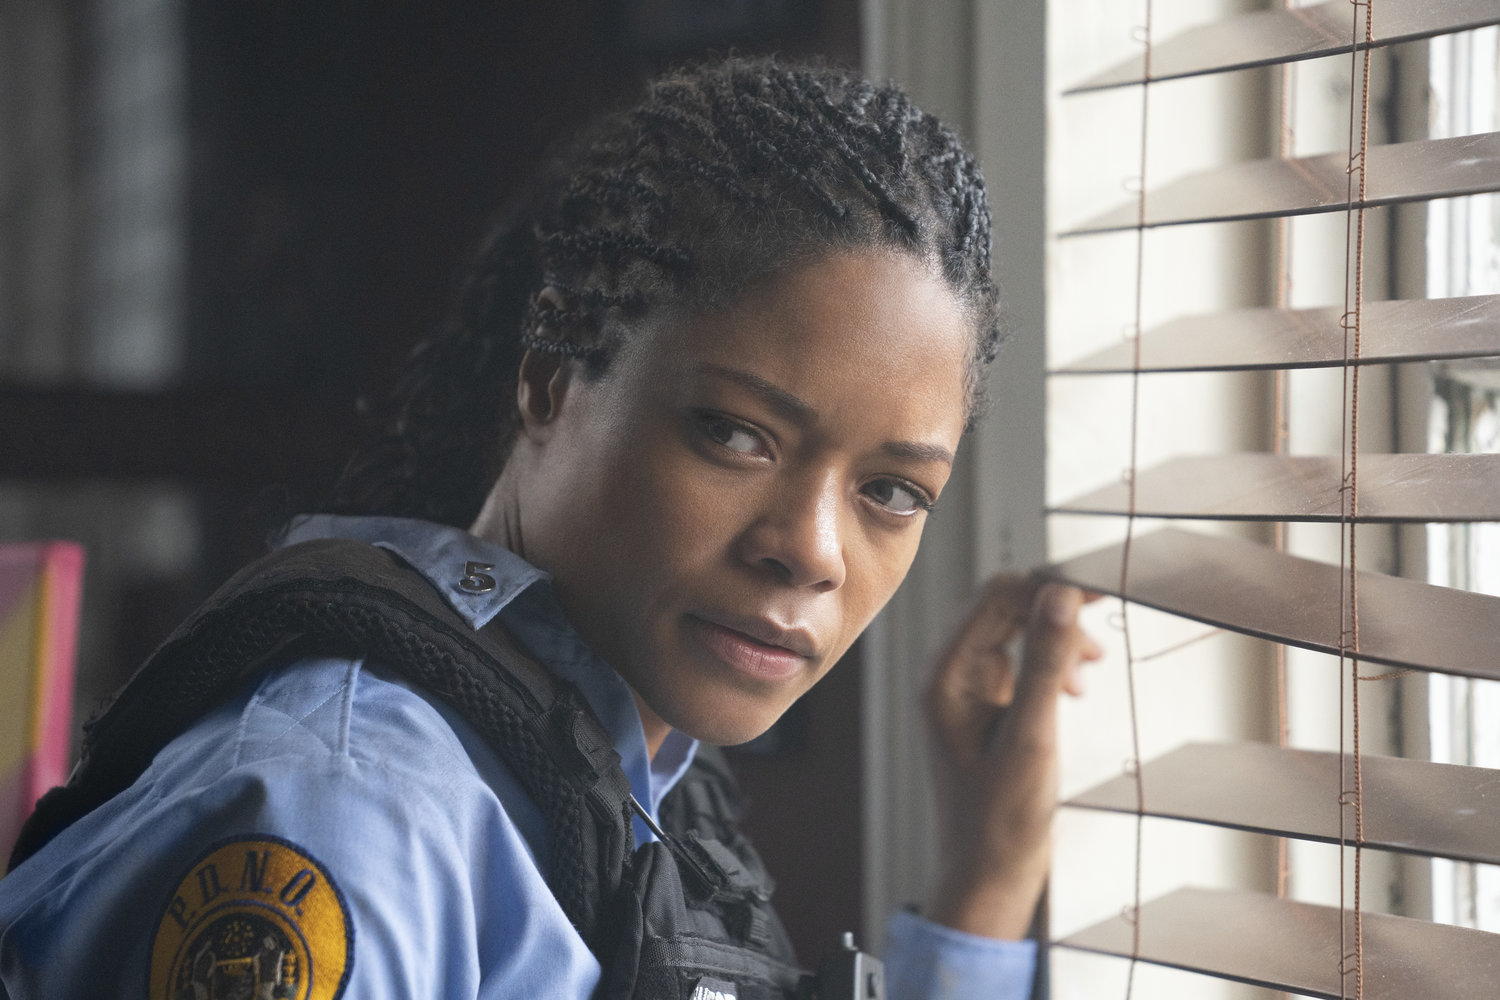 Naomie Harris Police Movie, Naomie Harries Police Movie, Naomie Harris Black and Blue, Naomie Harris 2019